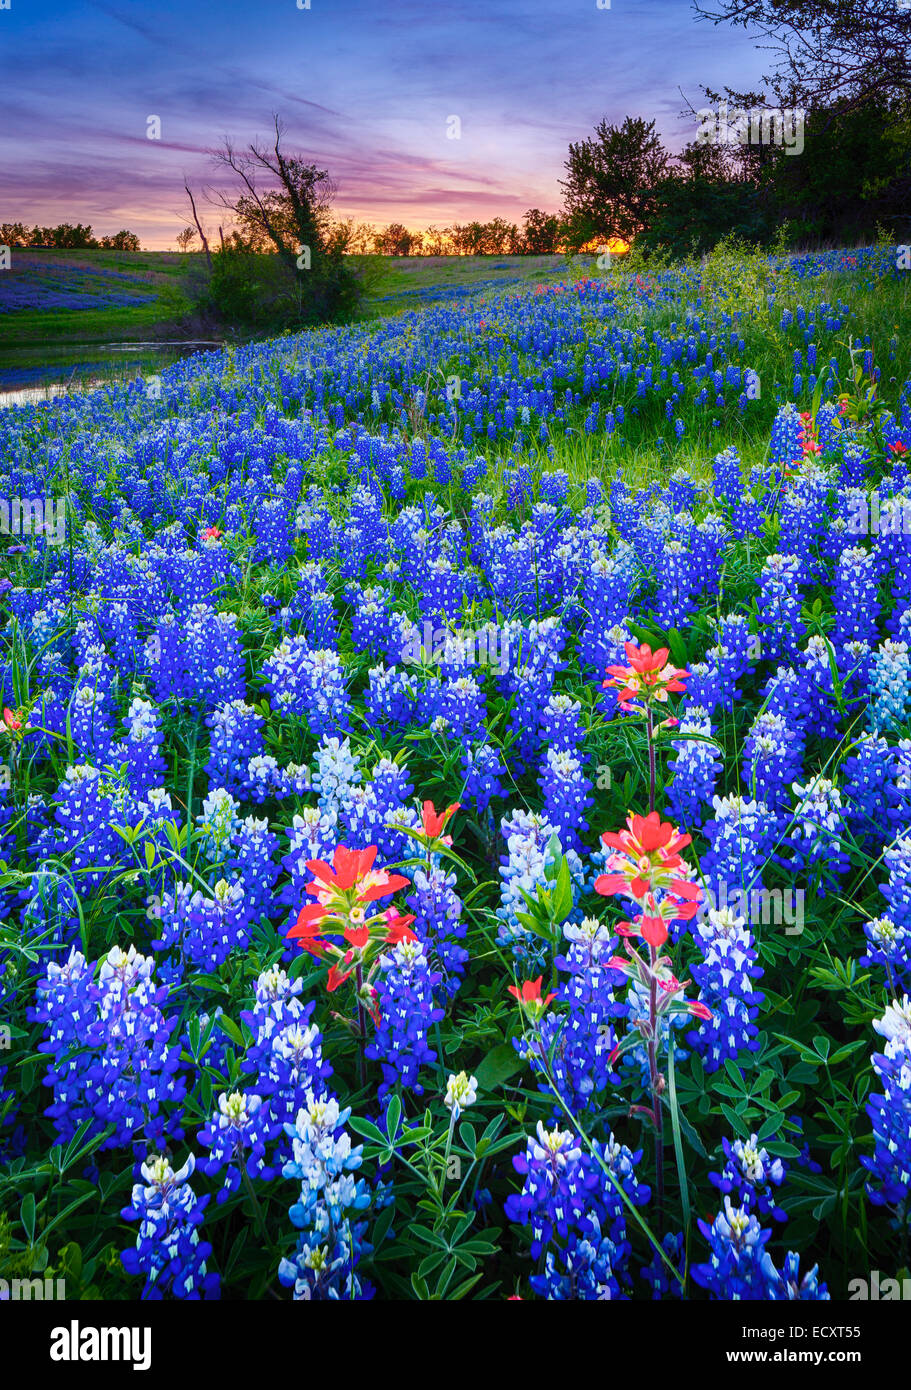 Texas paintbrush and bluebonnets in Ennis, Texas. Lupinus texensis, Texas bluebonnet, is a species of lupine endemic - Stock Image